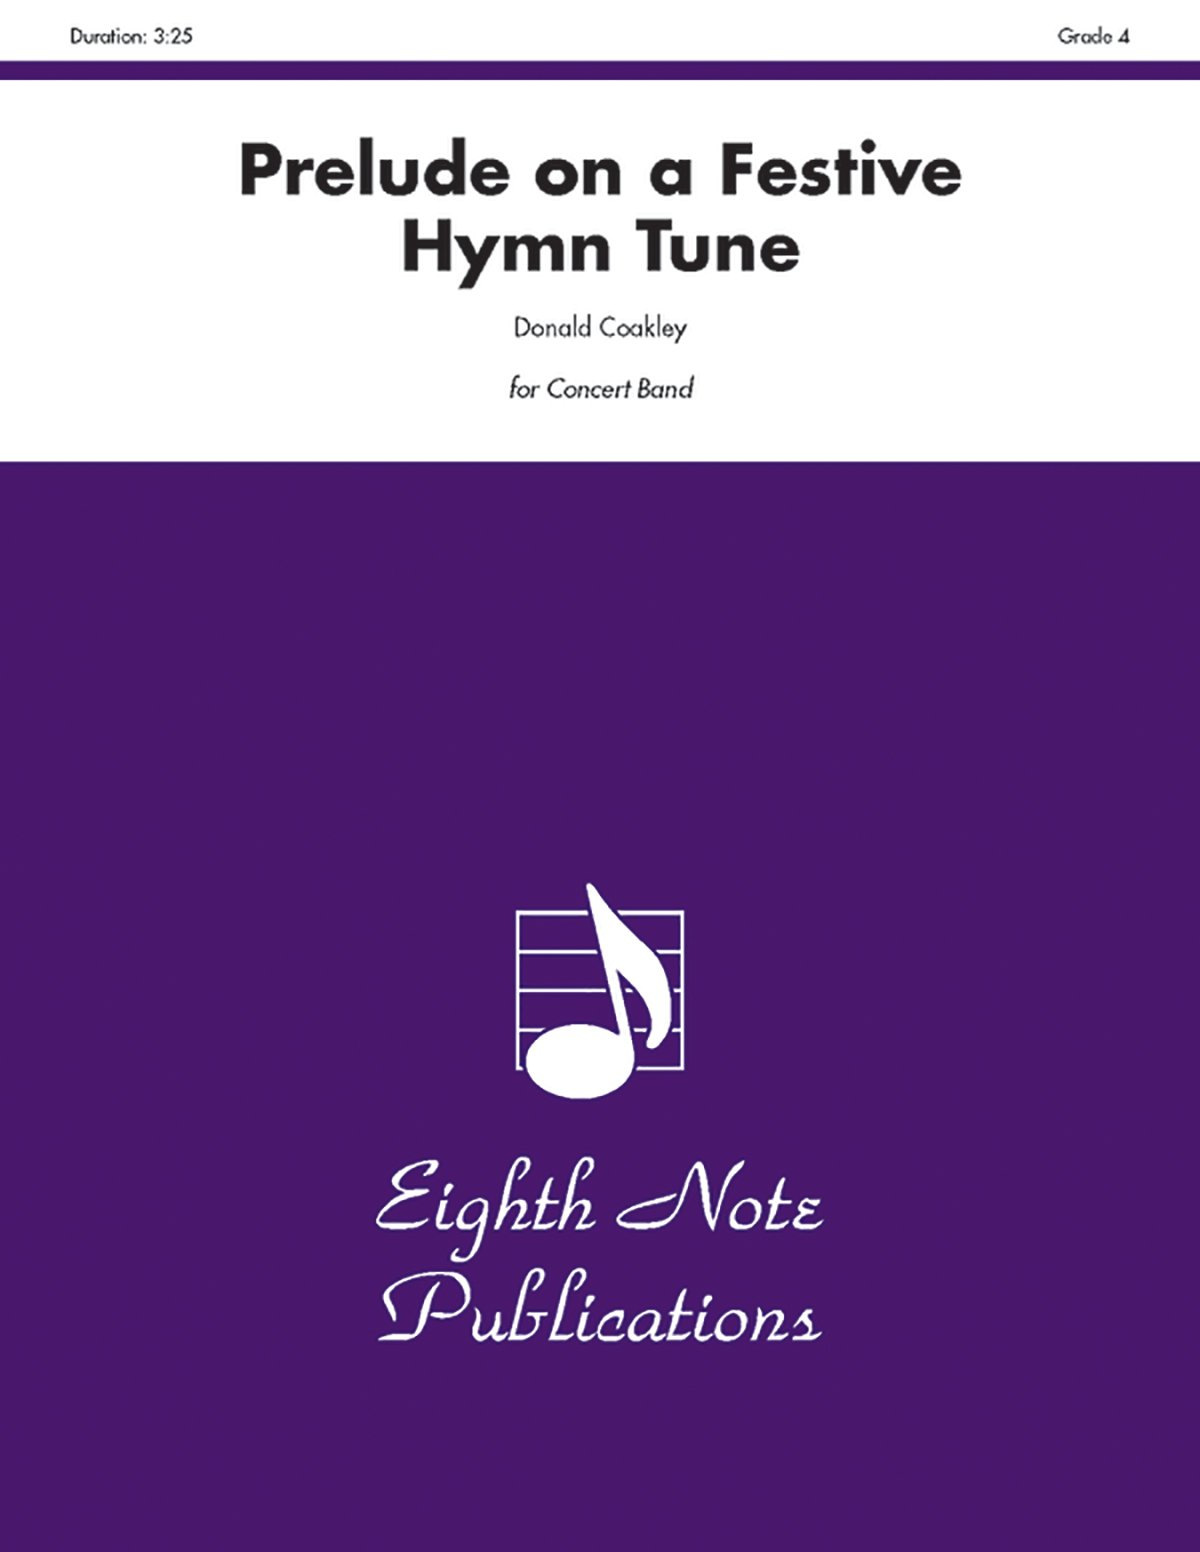 Prelude on a Festive Hymn Tune (Conductor Score & Parts) (Eighth Note Publications) pdf